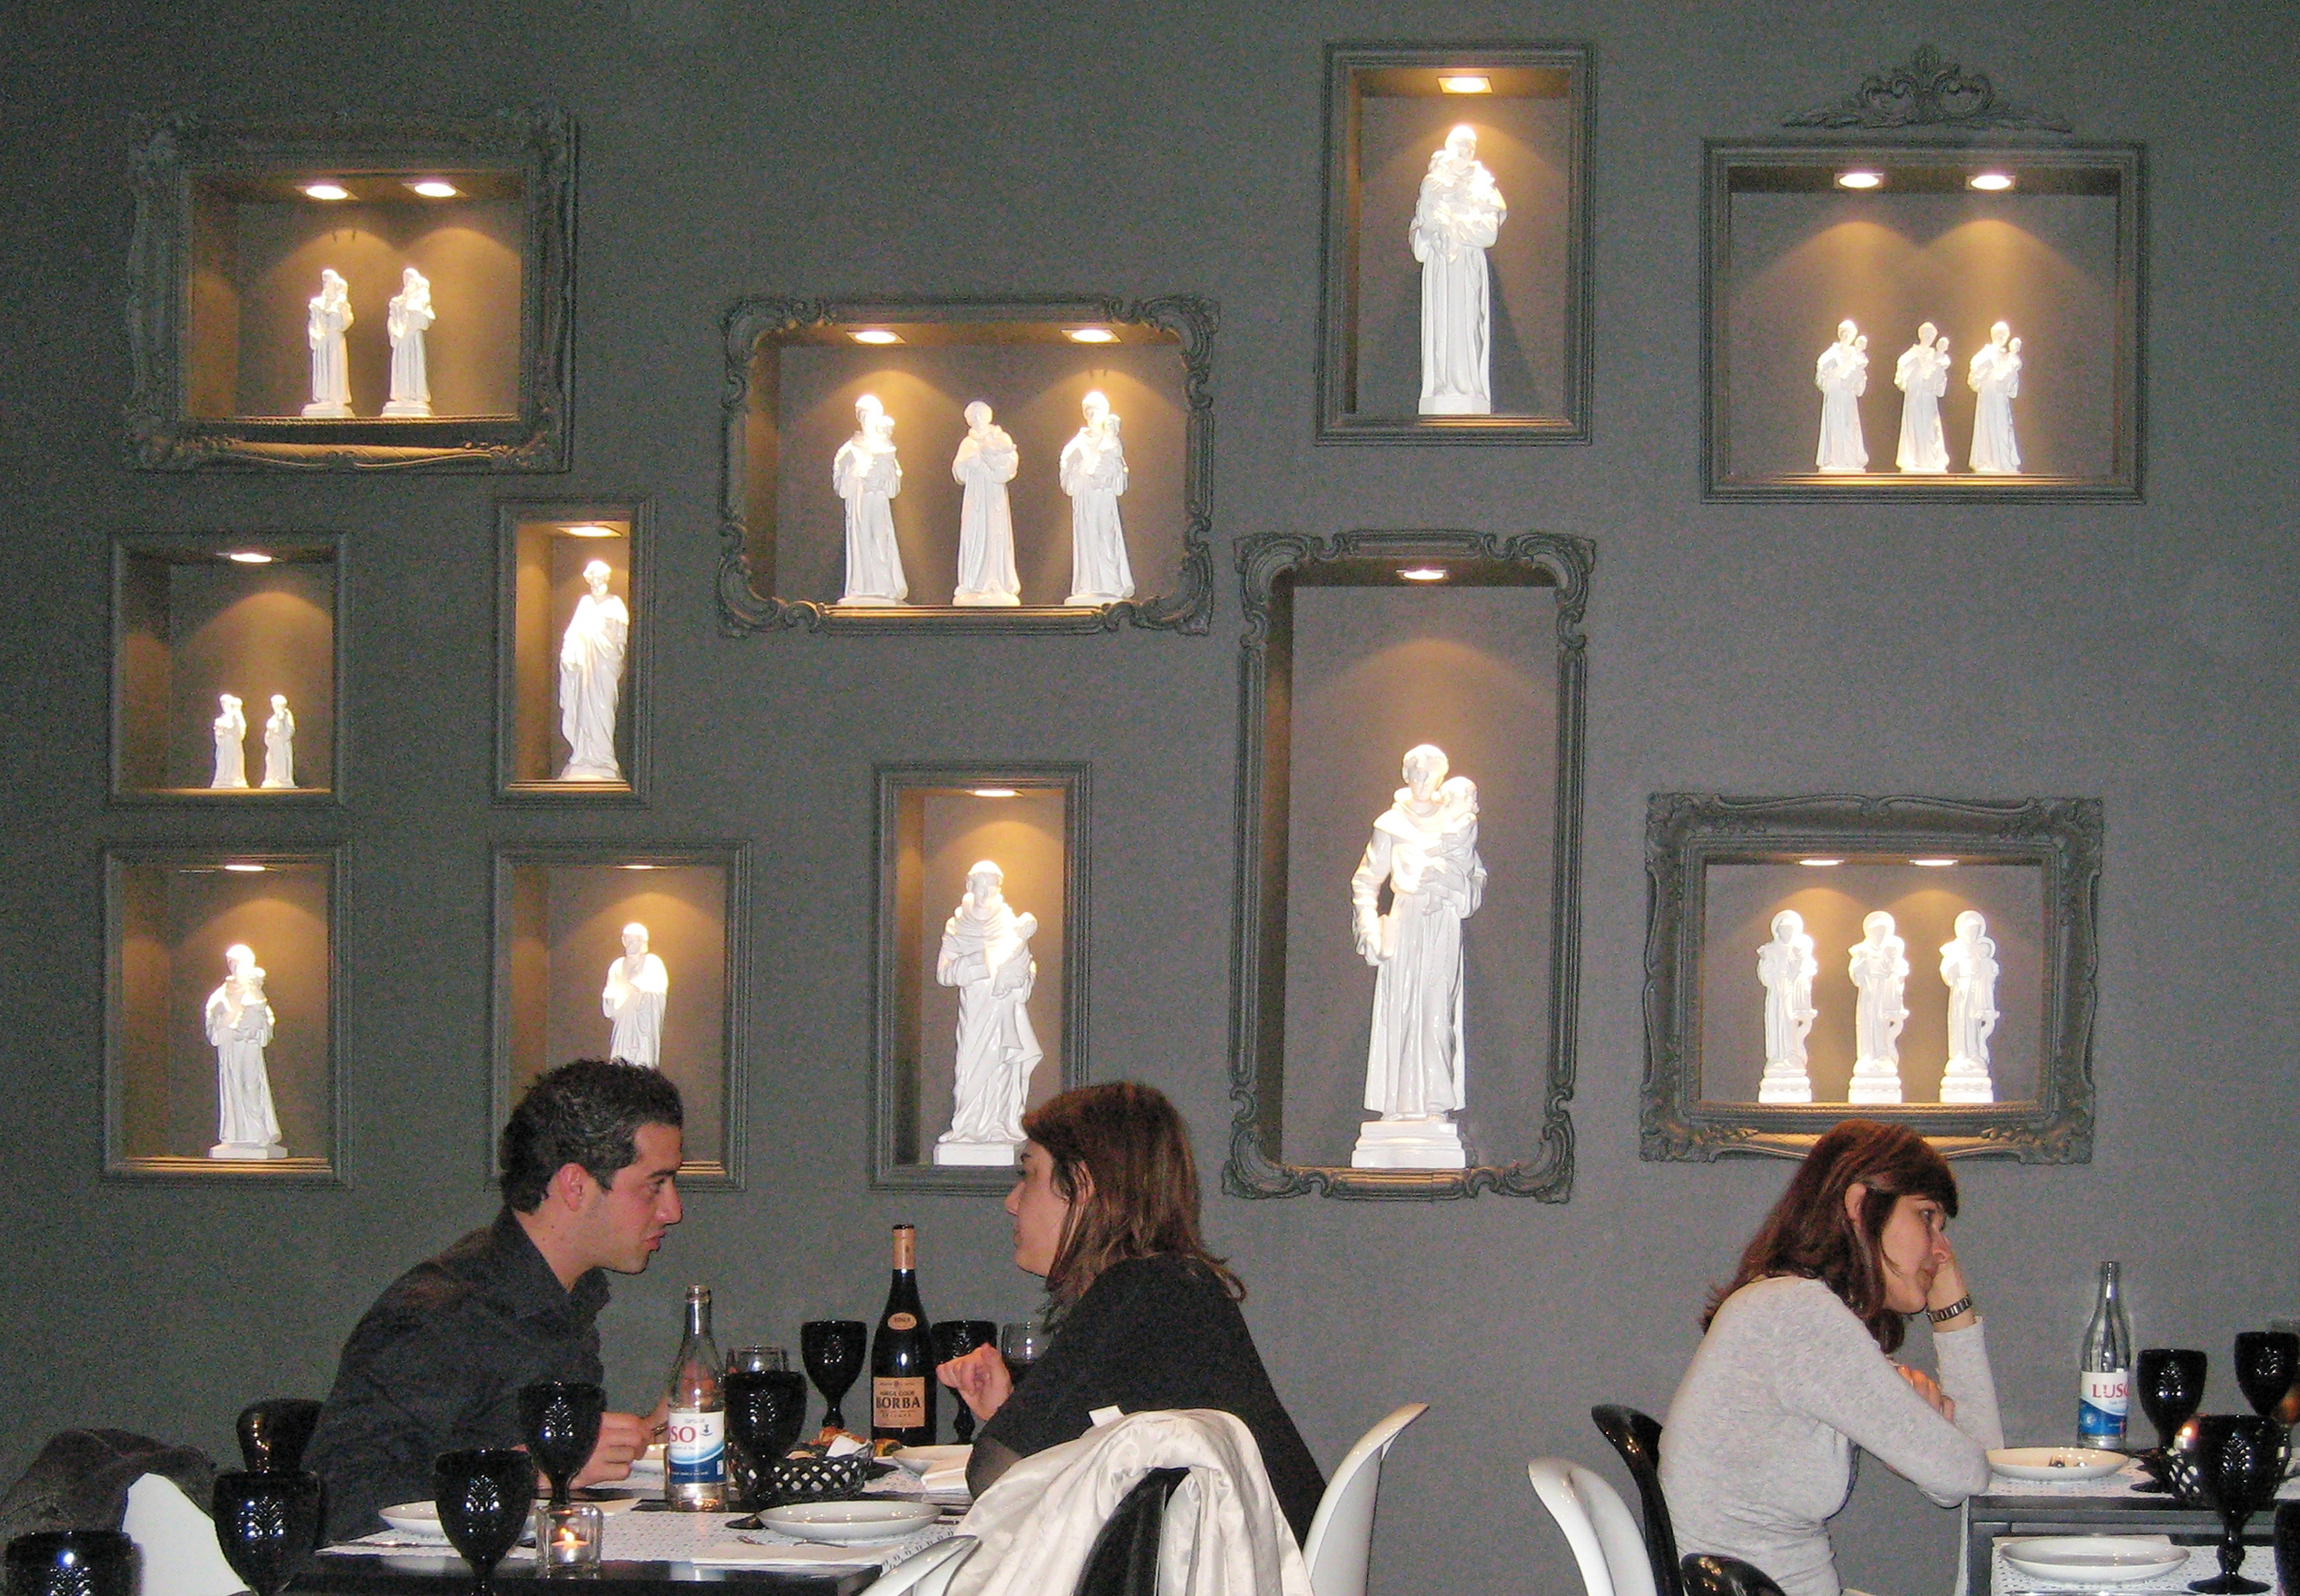 Statue wall in restaurant, Lisbon Portugal.jpg